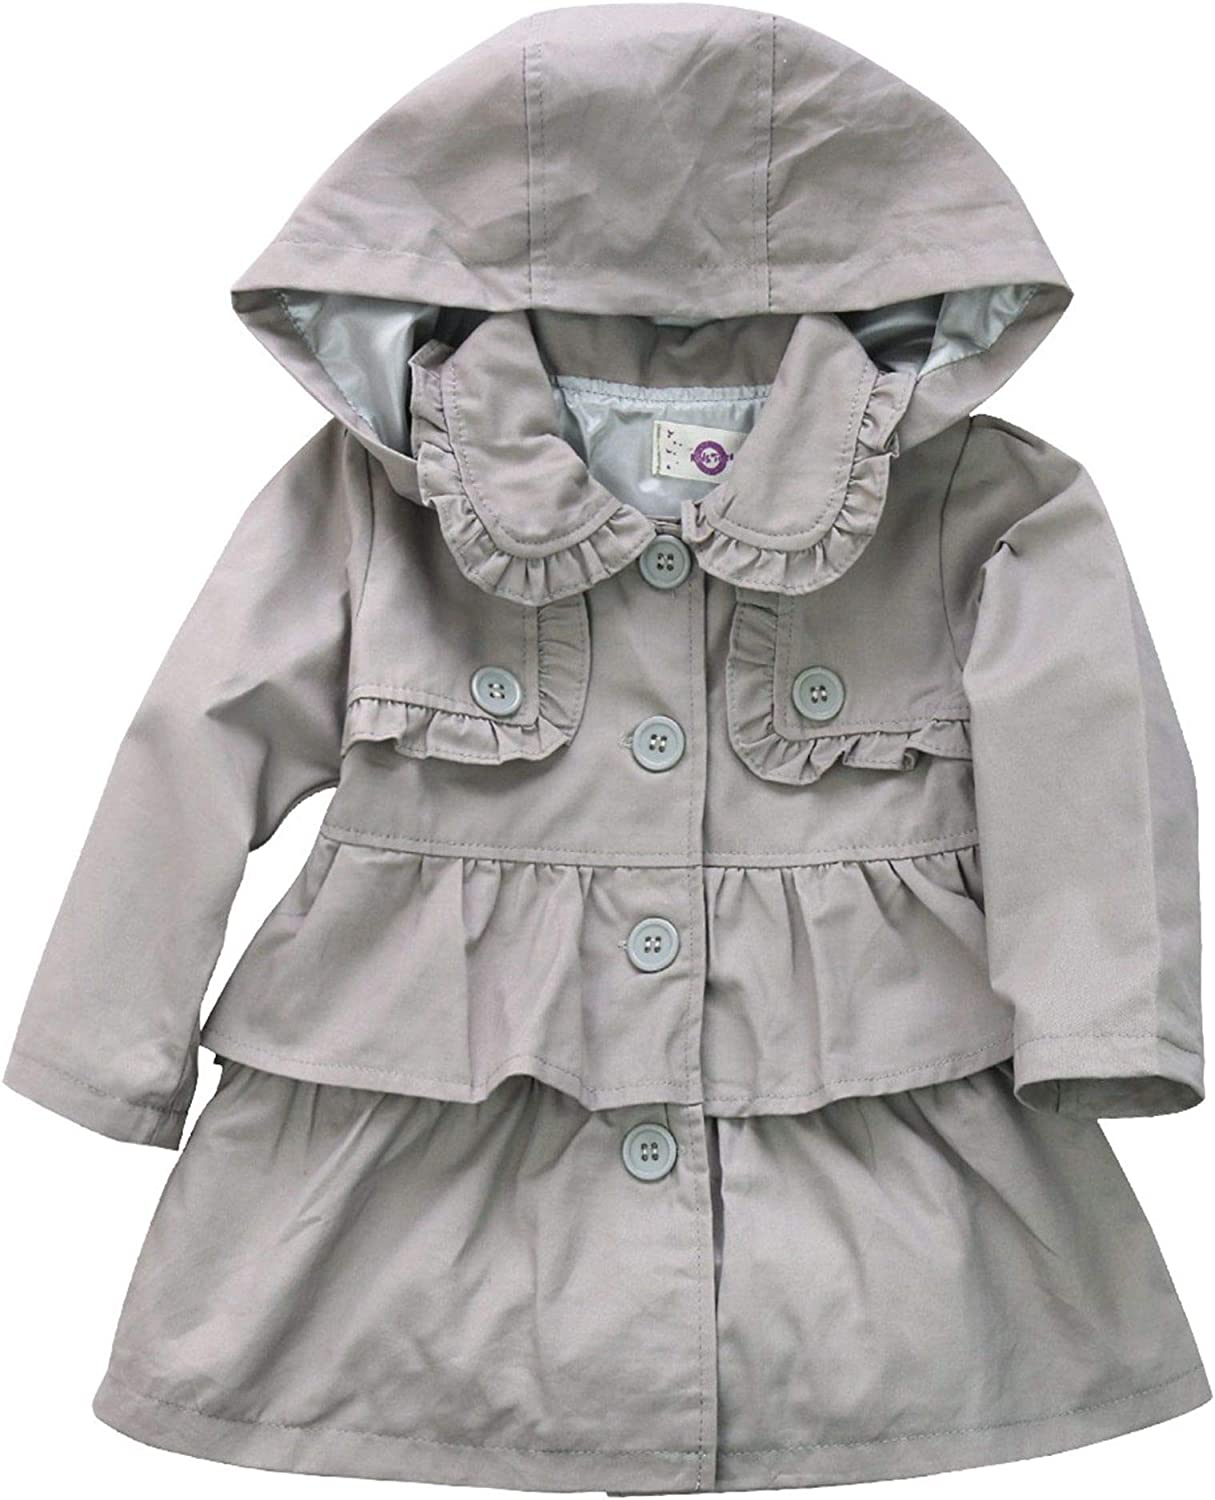 YiZYiF Kids Baby Girls Winter Hooded Oakland Mall Out Jacket San Diego Mall Trench Coat Wind